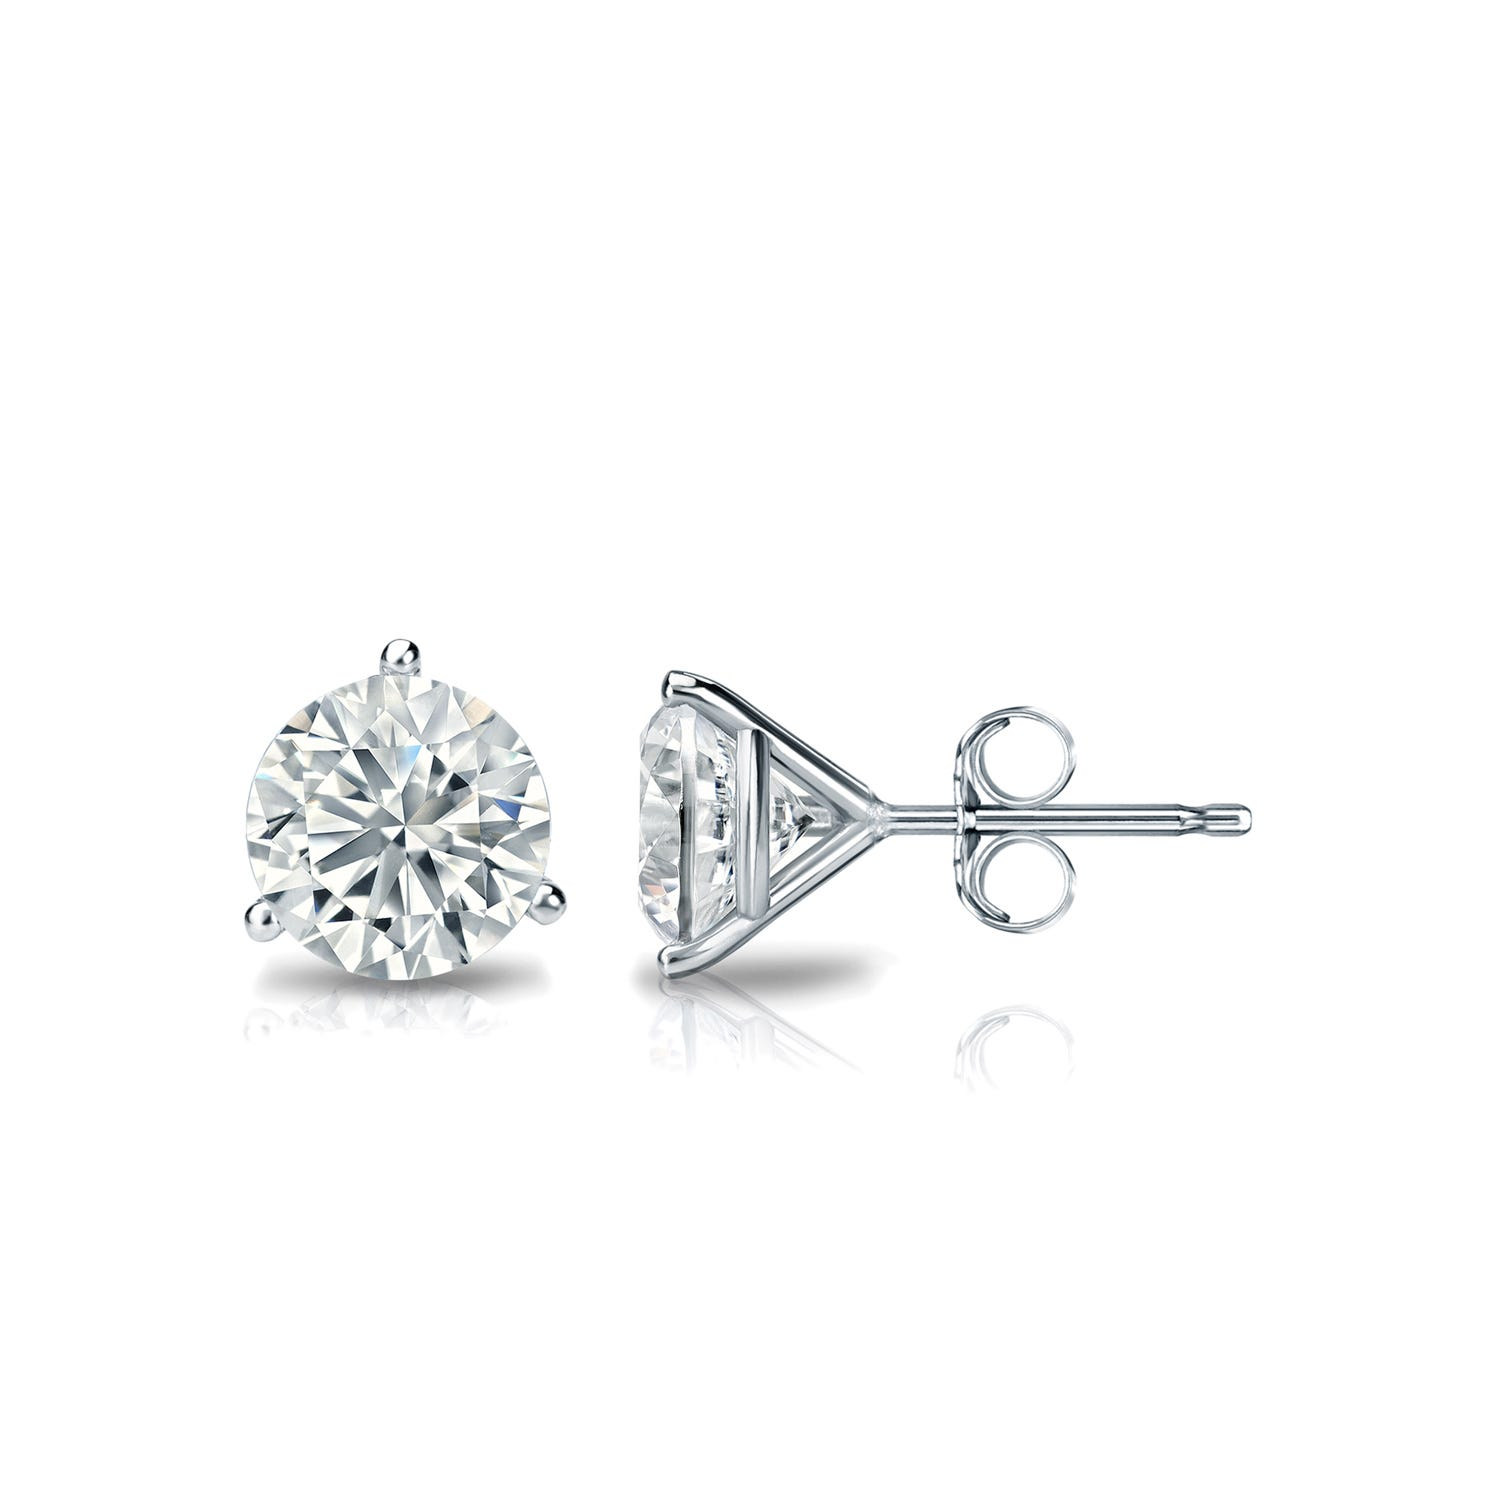 3/4 CTTW Round Diamond Solitaire Stud Earrings IJ I1 in 18K White Gold IGI Certified 3-Prong Setting